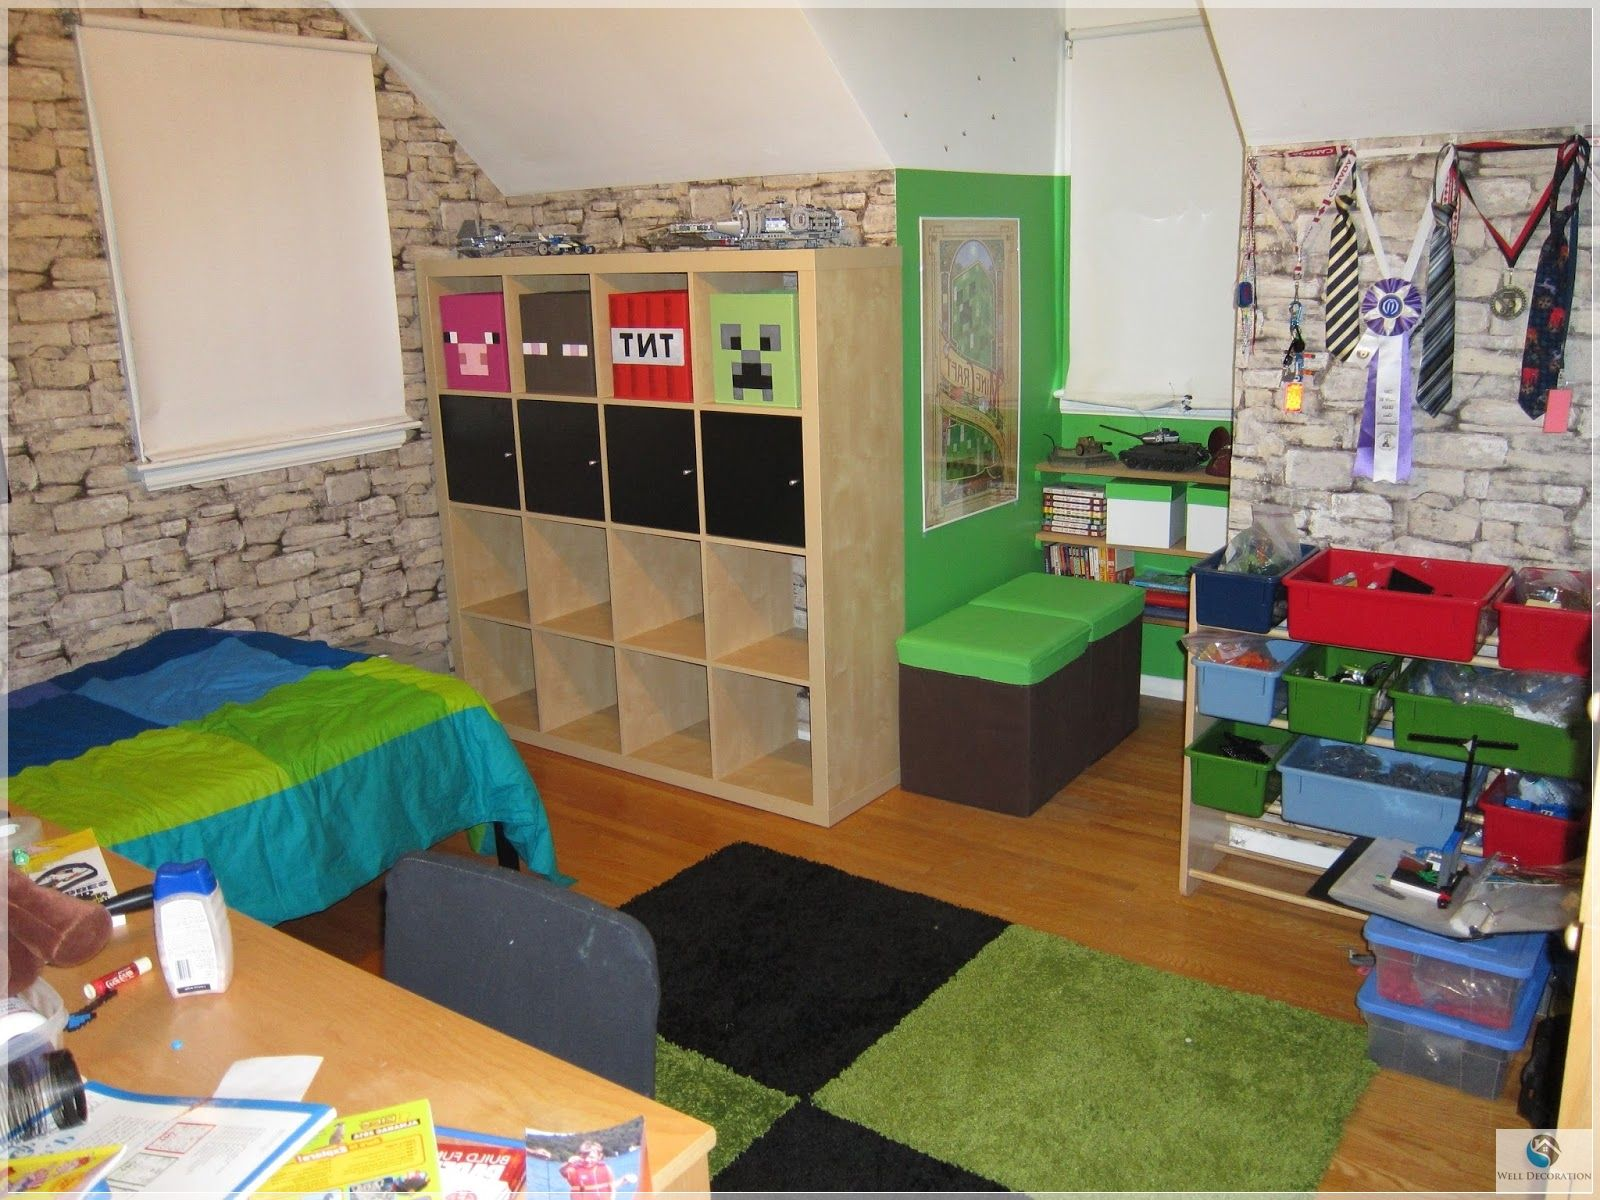 Minecraft Bedroom Furniture Real Life Minecraft Bedroom Furniture Real Life Outstanding Home And Decor Minecraft Room Decor Ideas Interior Exterior Colors Storage Minecraft Bedroom Minecraft And A Child On Pinterest Also Check